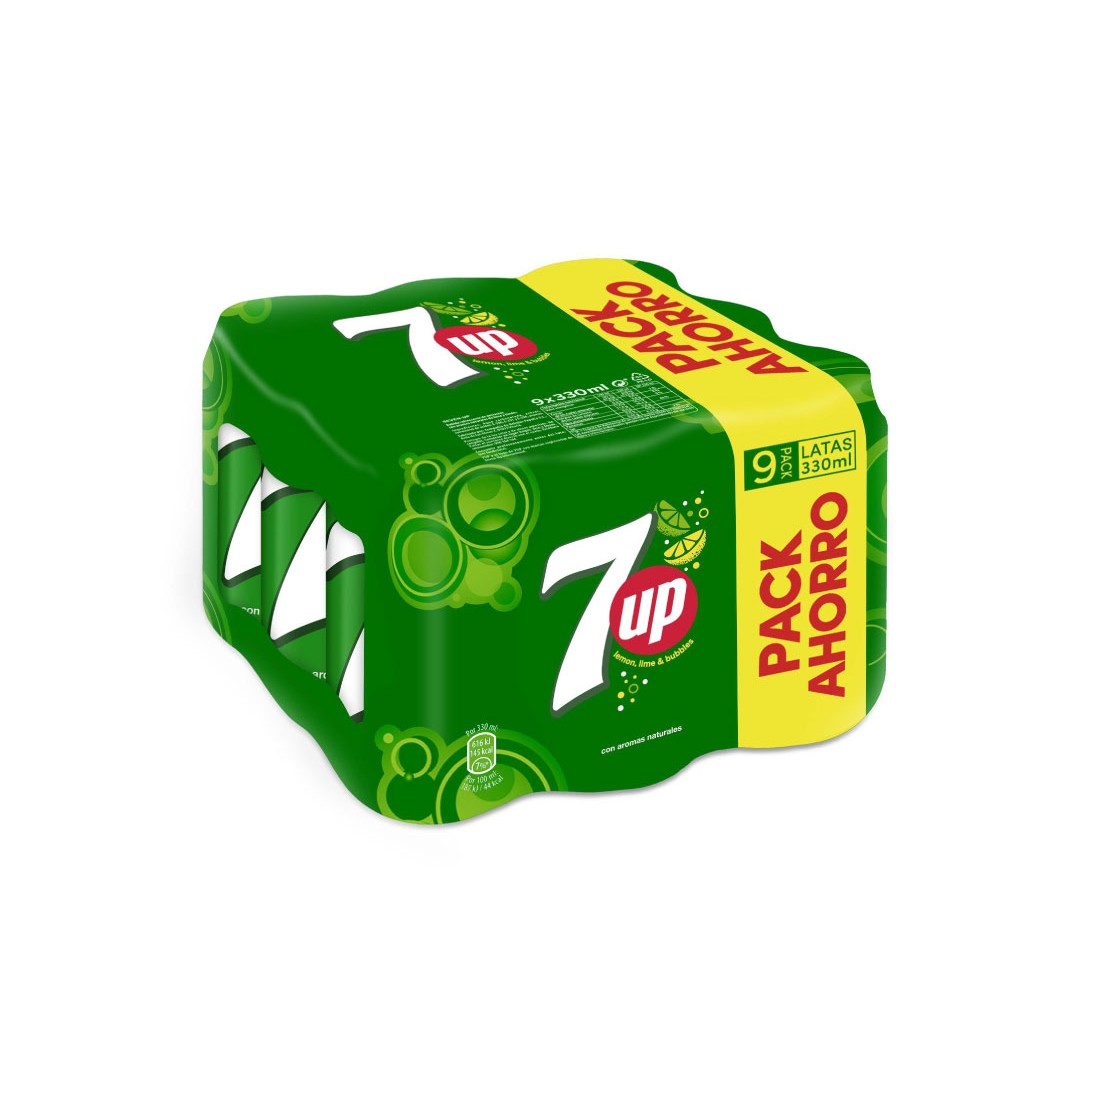 7up lima refresco lima limon de 33cl. por 9 unidades en lata